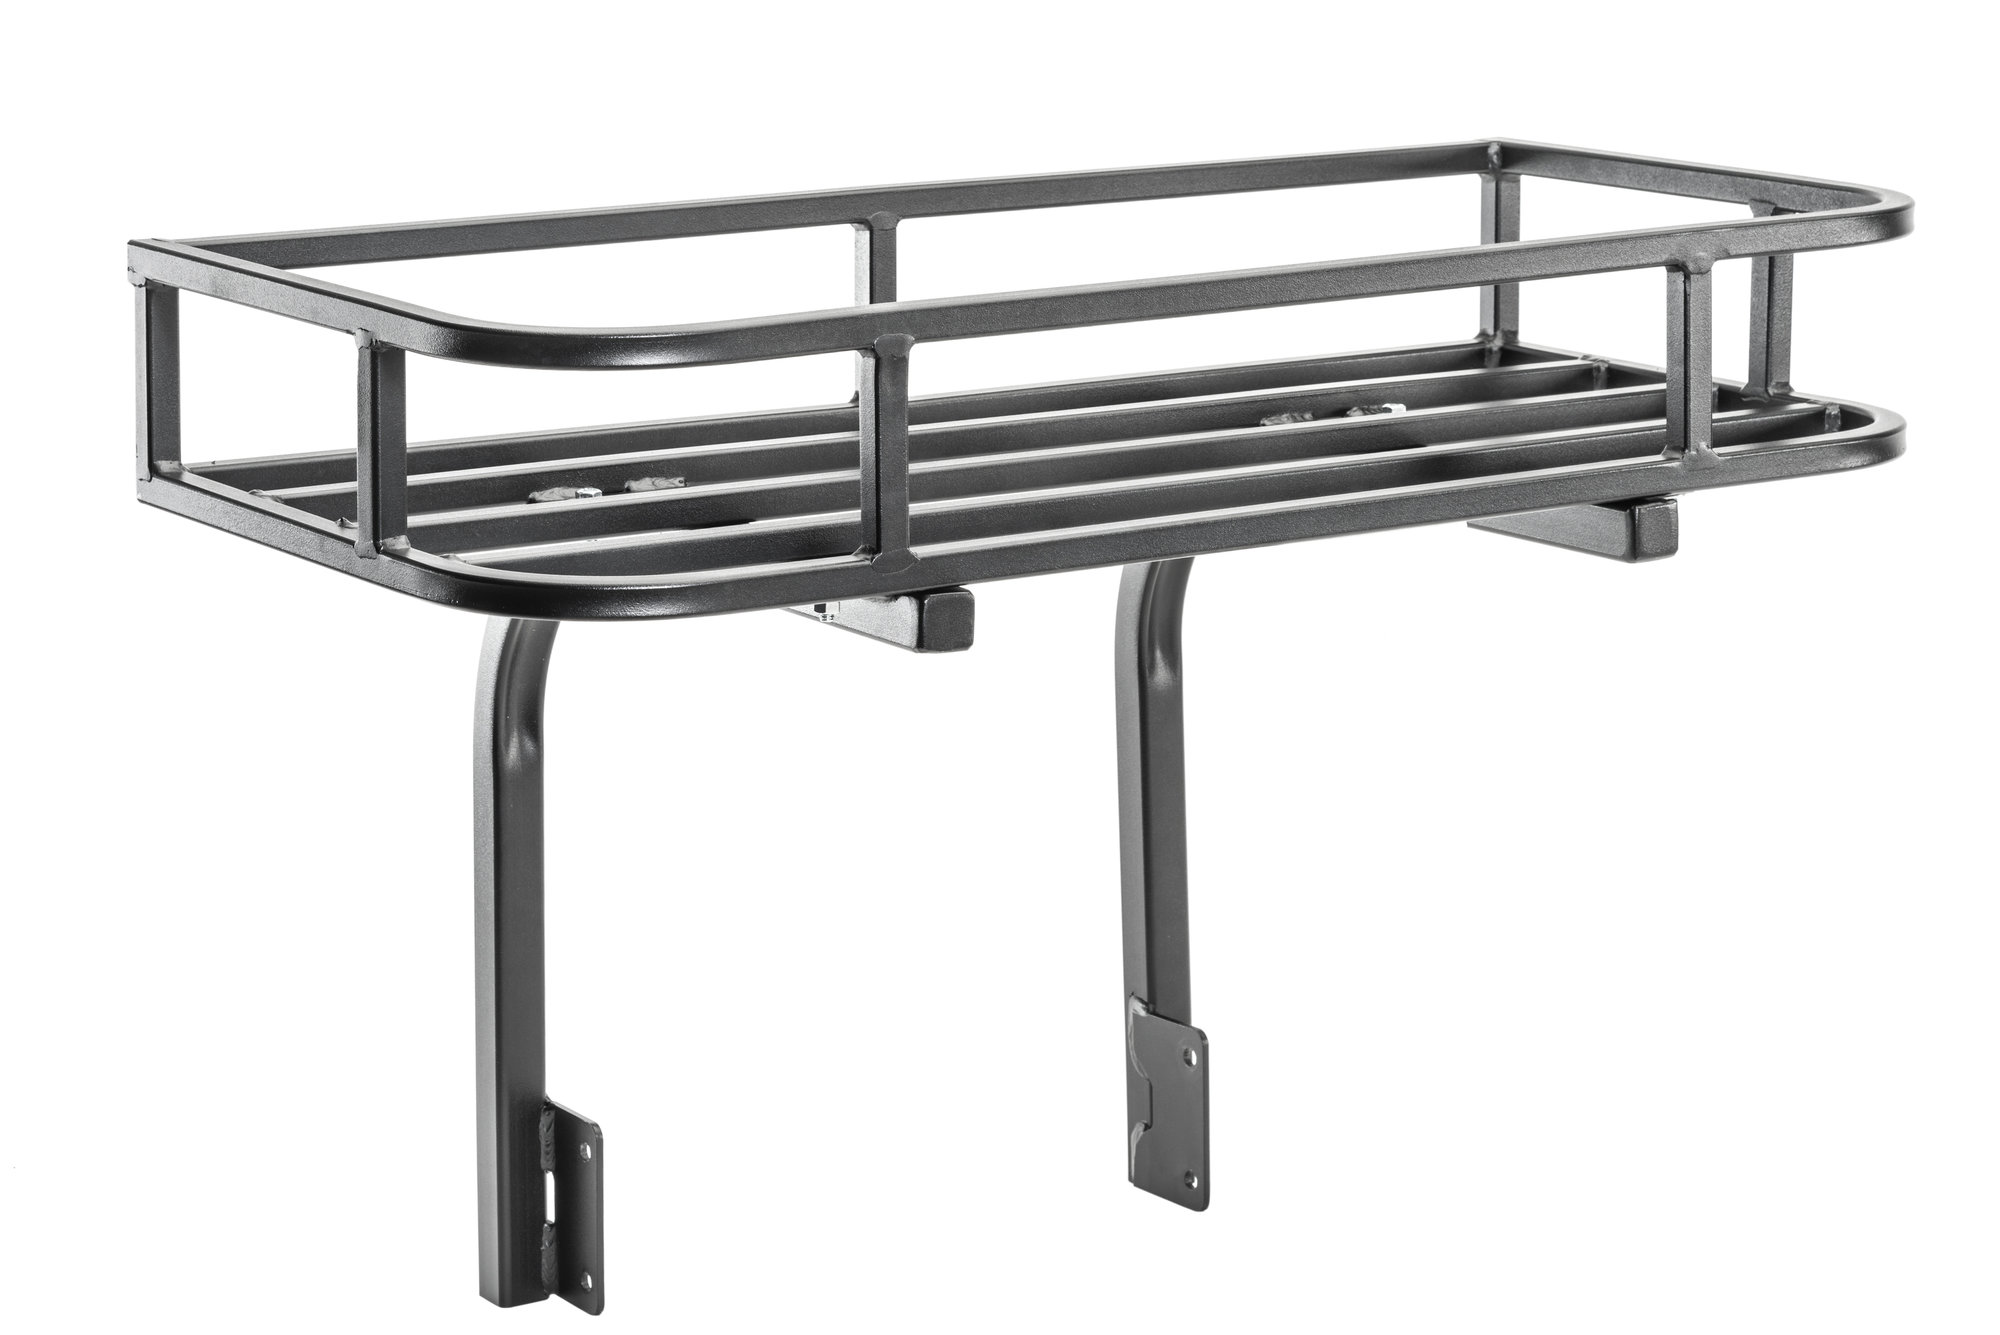 LoD JTK9601 Signature Series Trail Rack for 97-06 Jeep